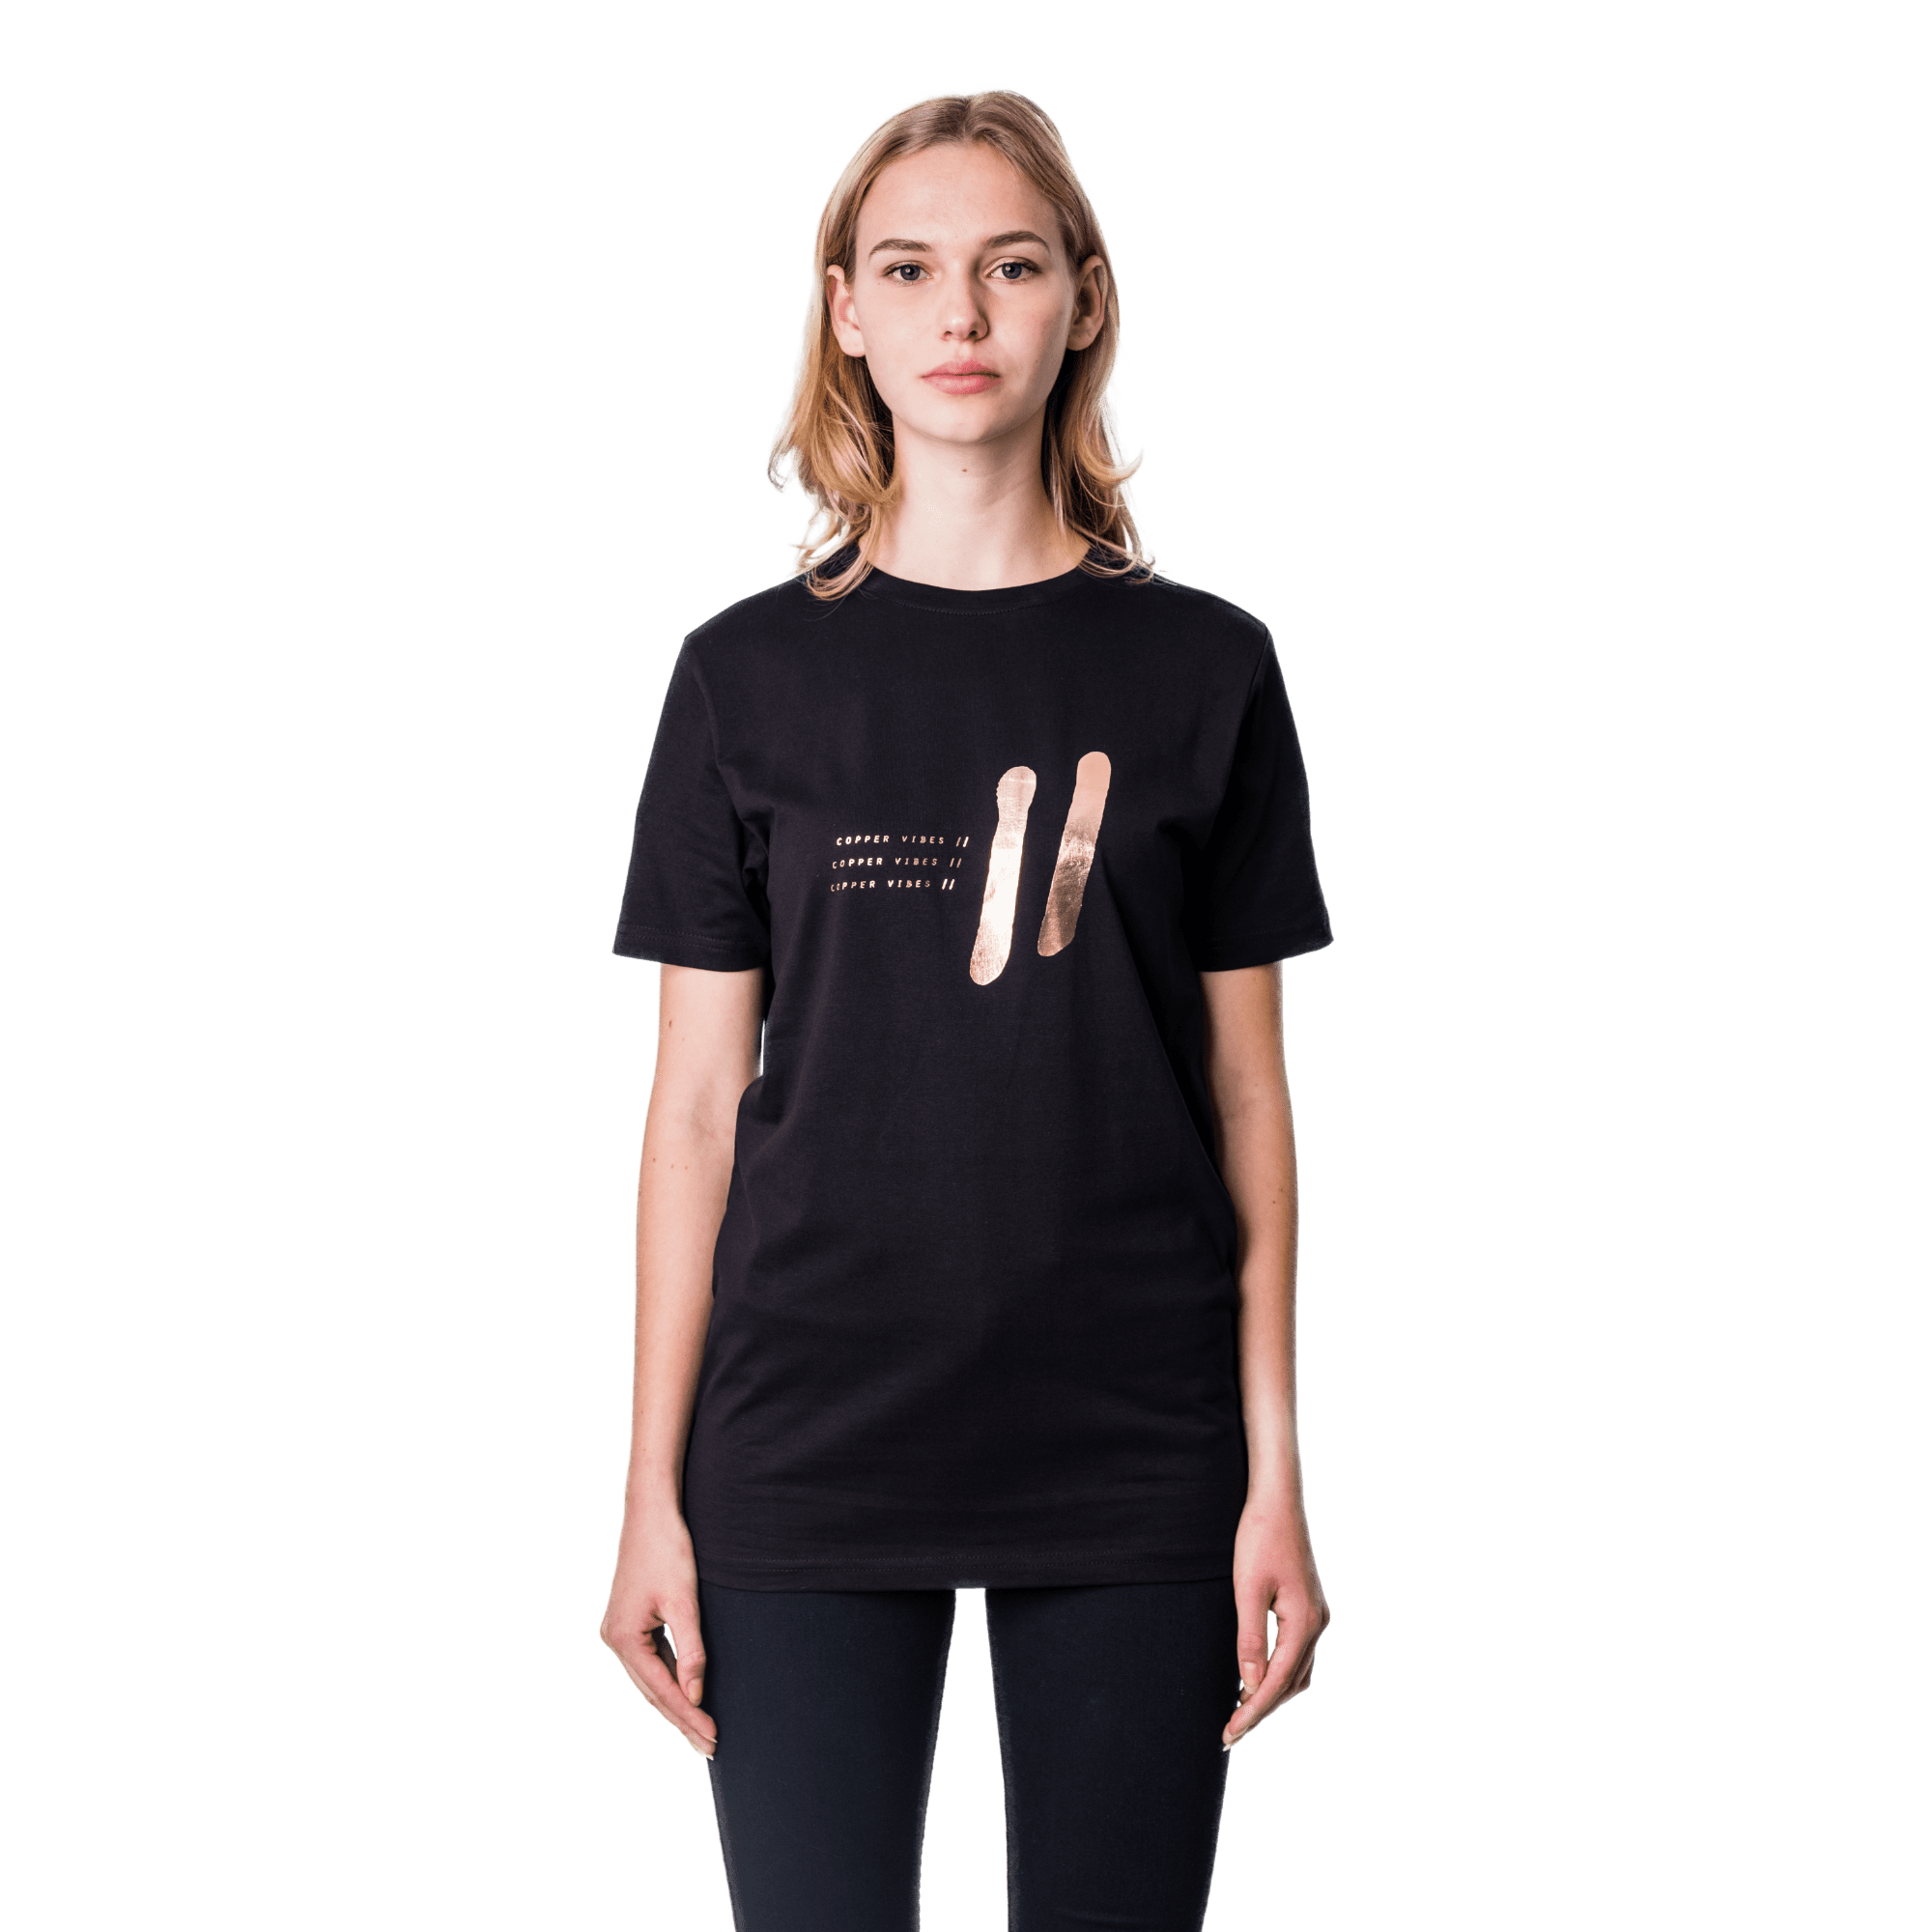 Copper Vibes Shirt